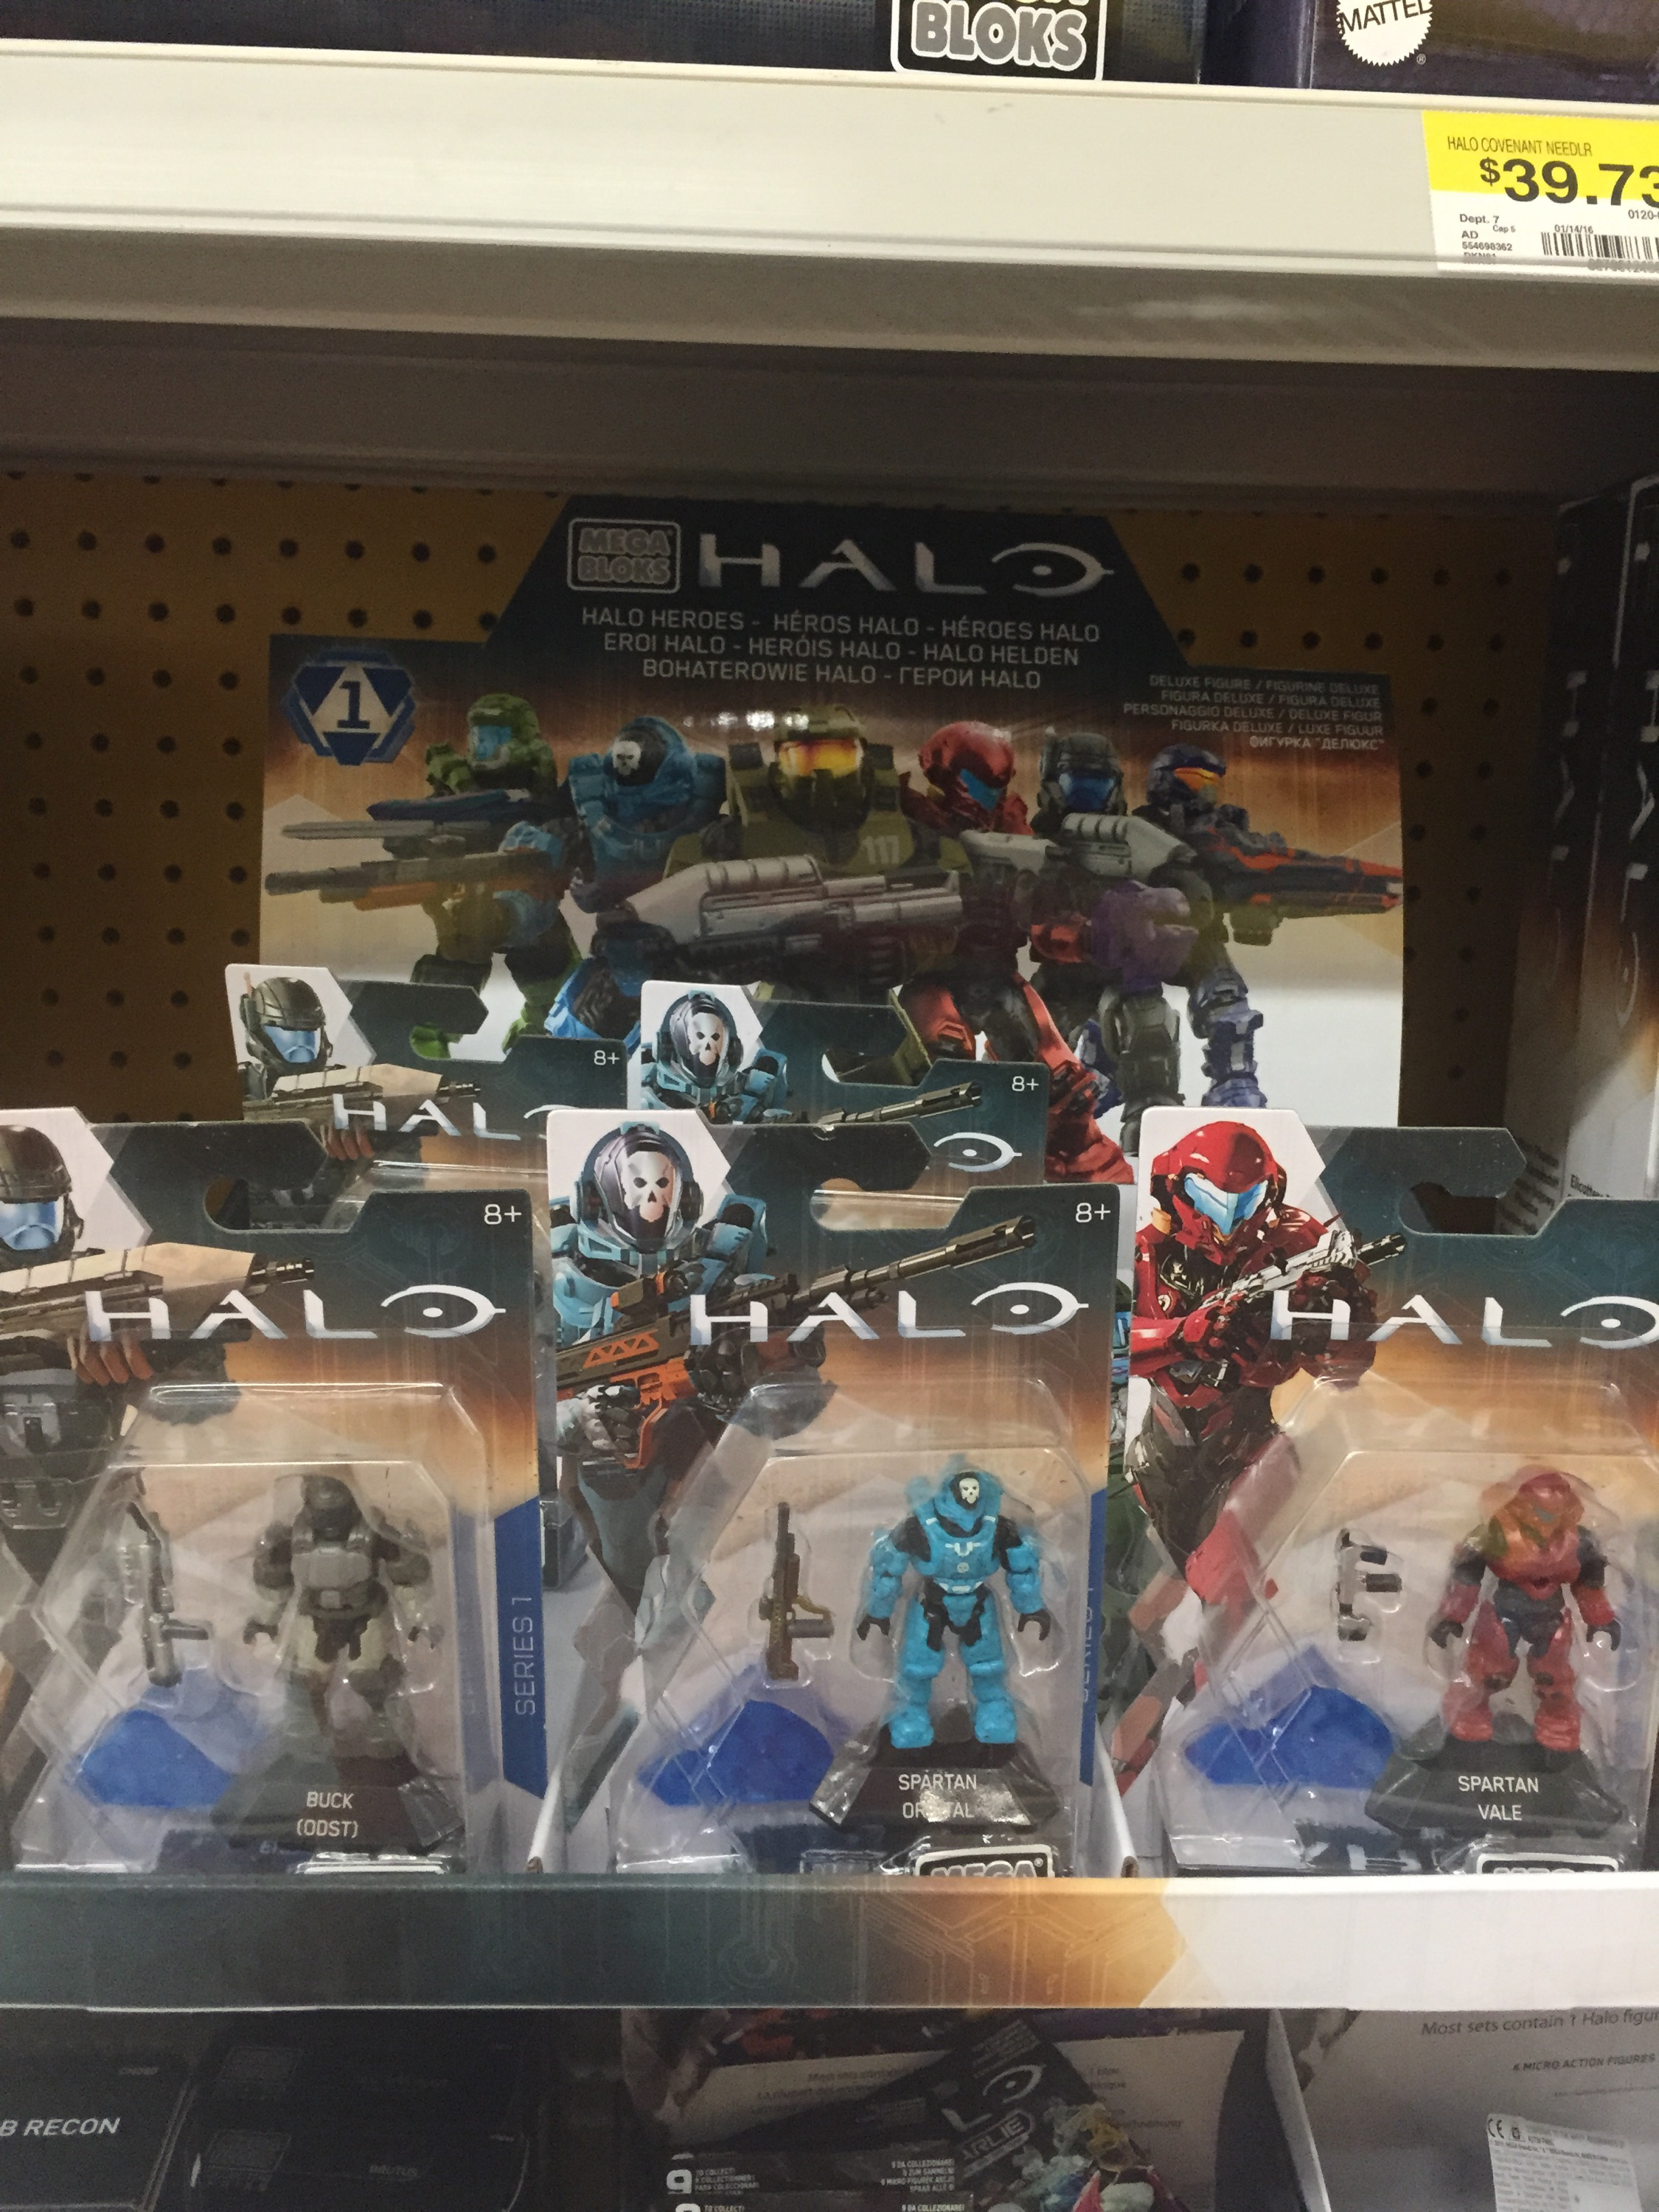 Halo Mega Bloks 2016 Halo Heroes Series 1 Figures Released! - Halo